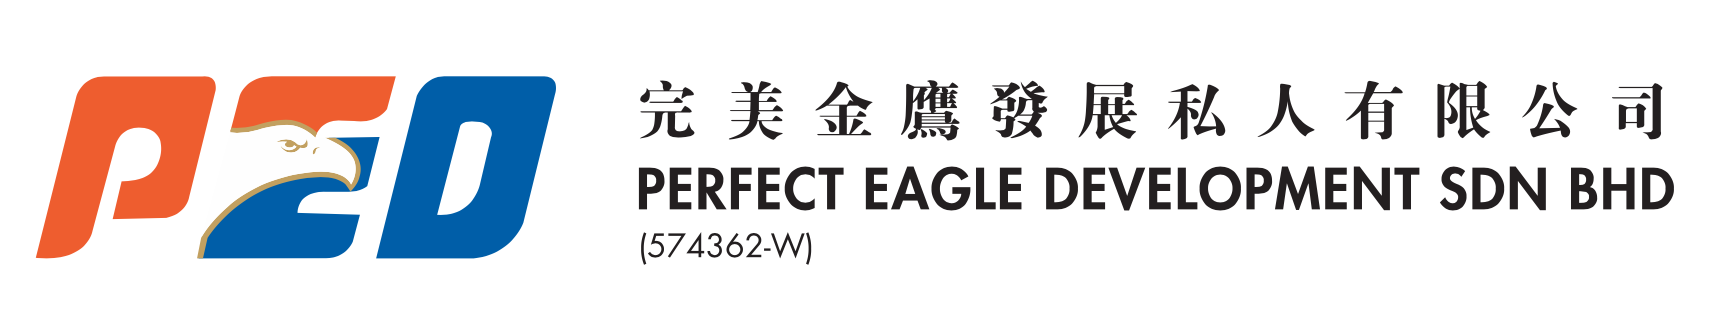 Developed By Perfect Eagle Development Sdn Bhd